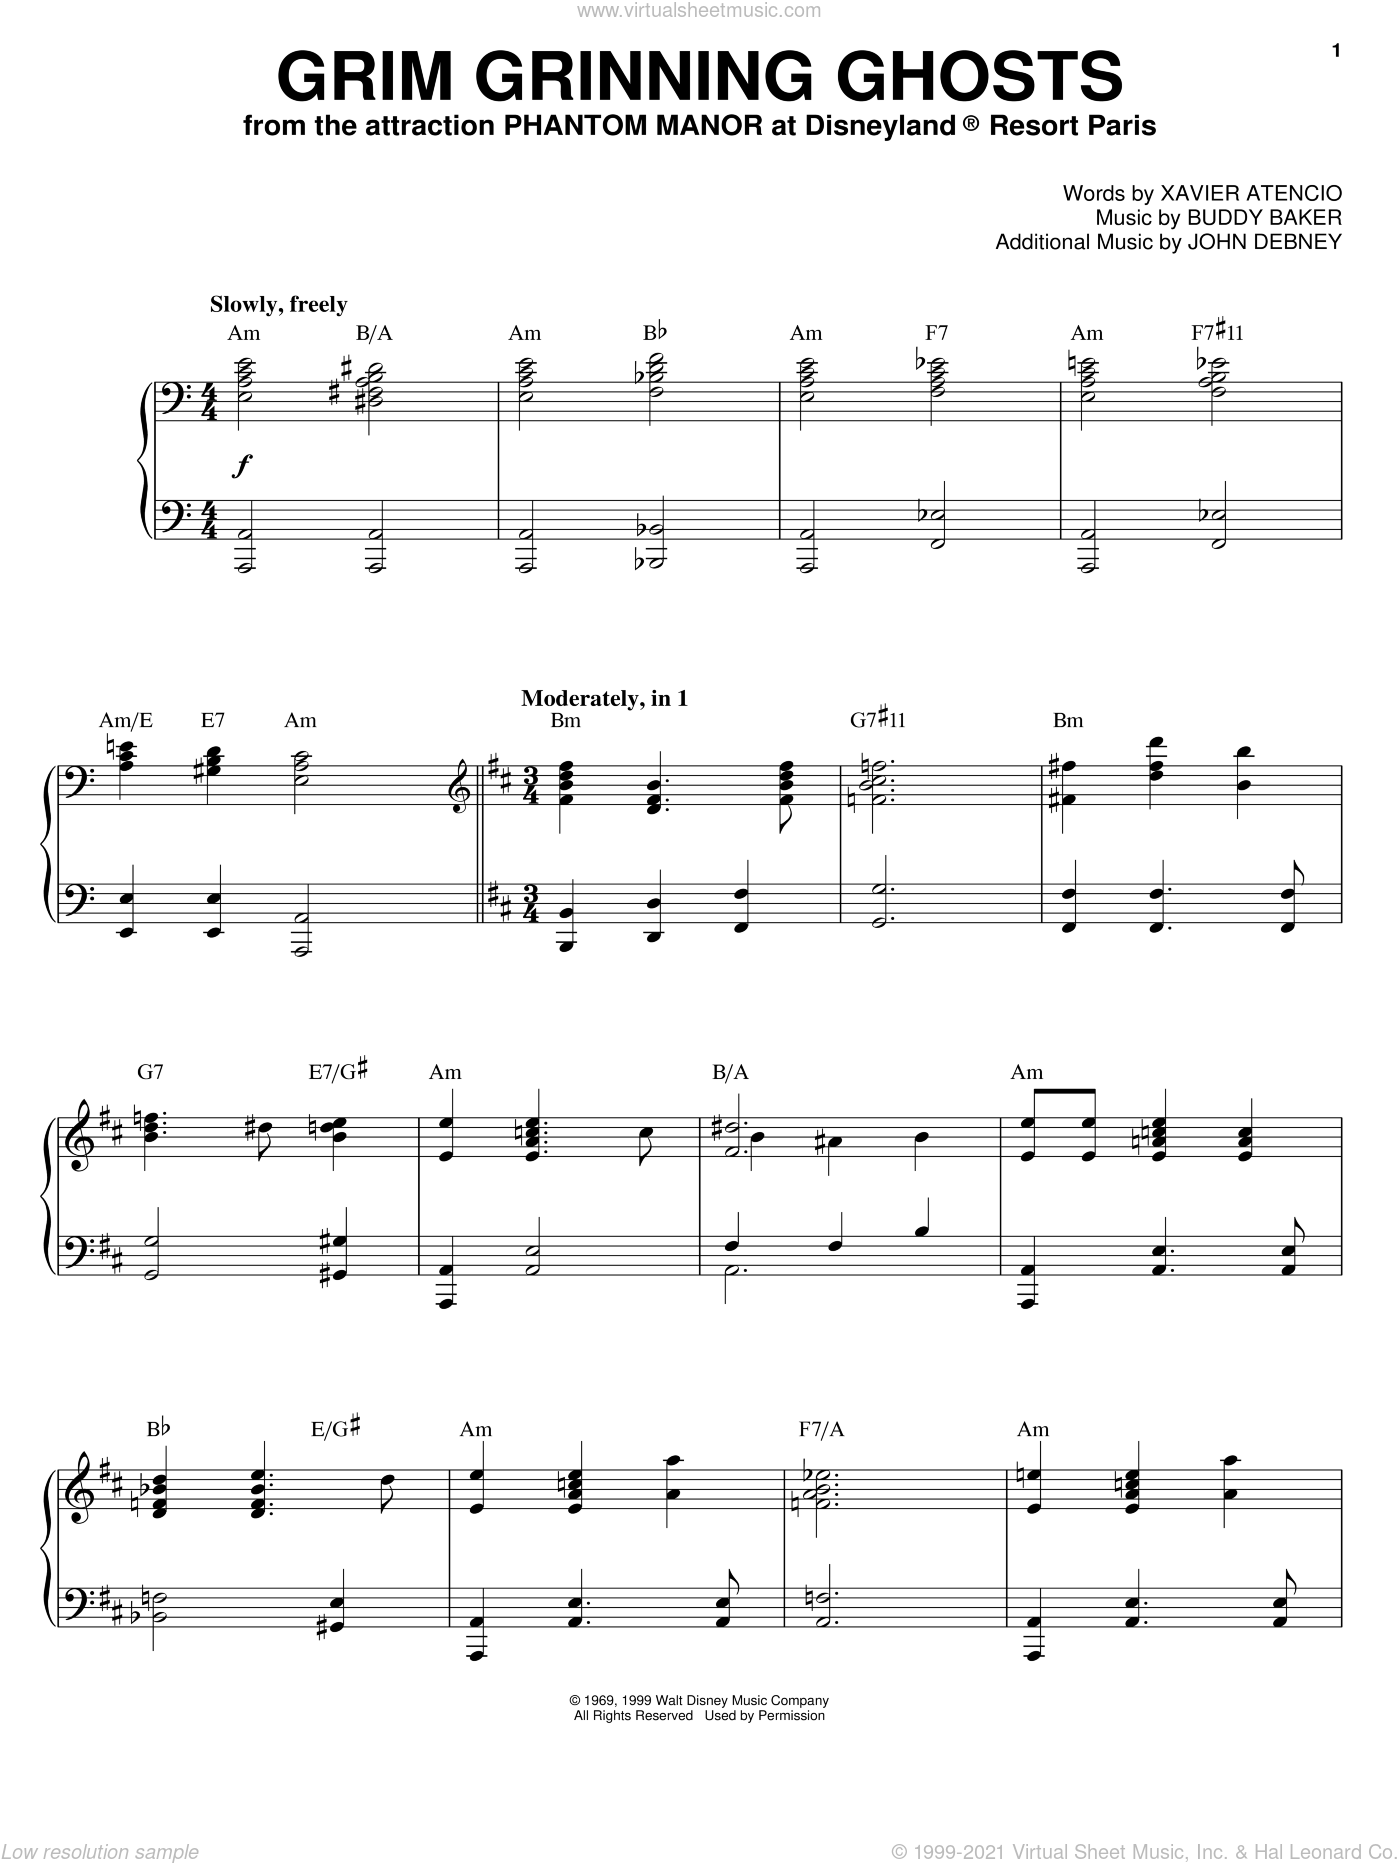 Grim Grinning Ghosts sheet music for piano solo by Buddy Baker